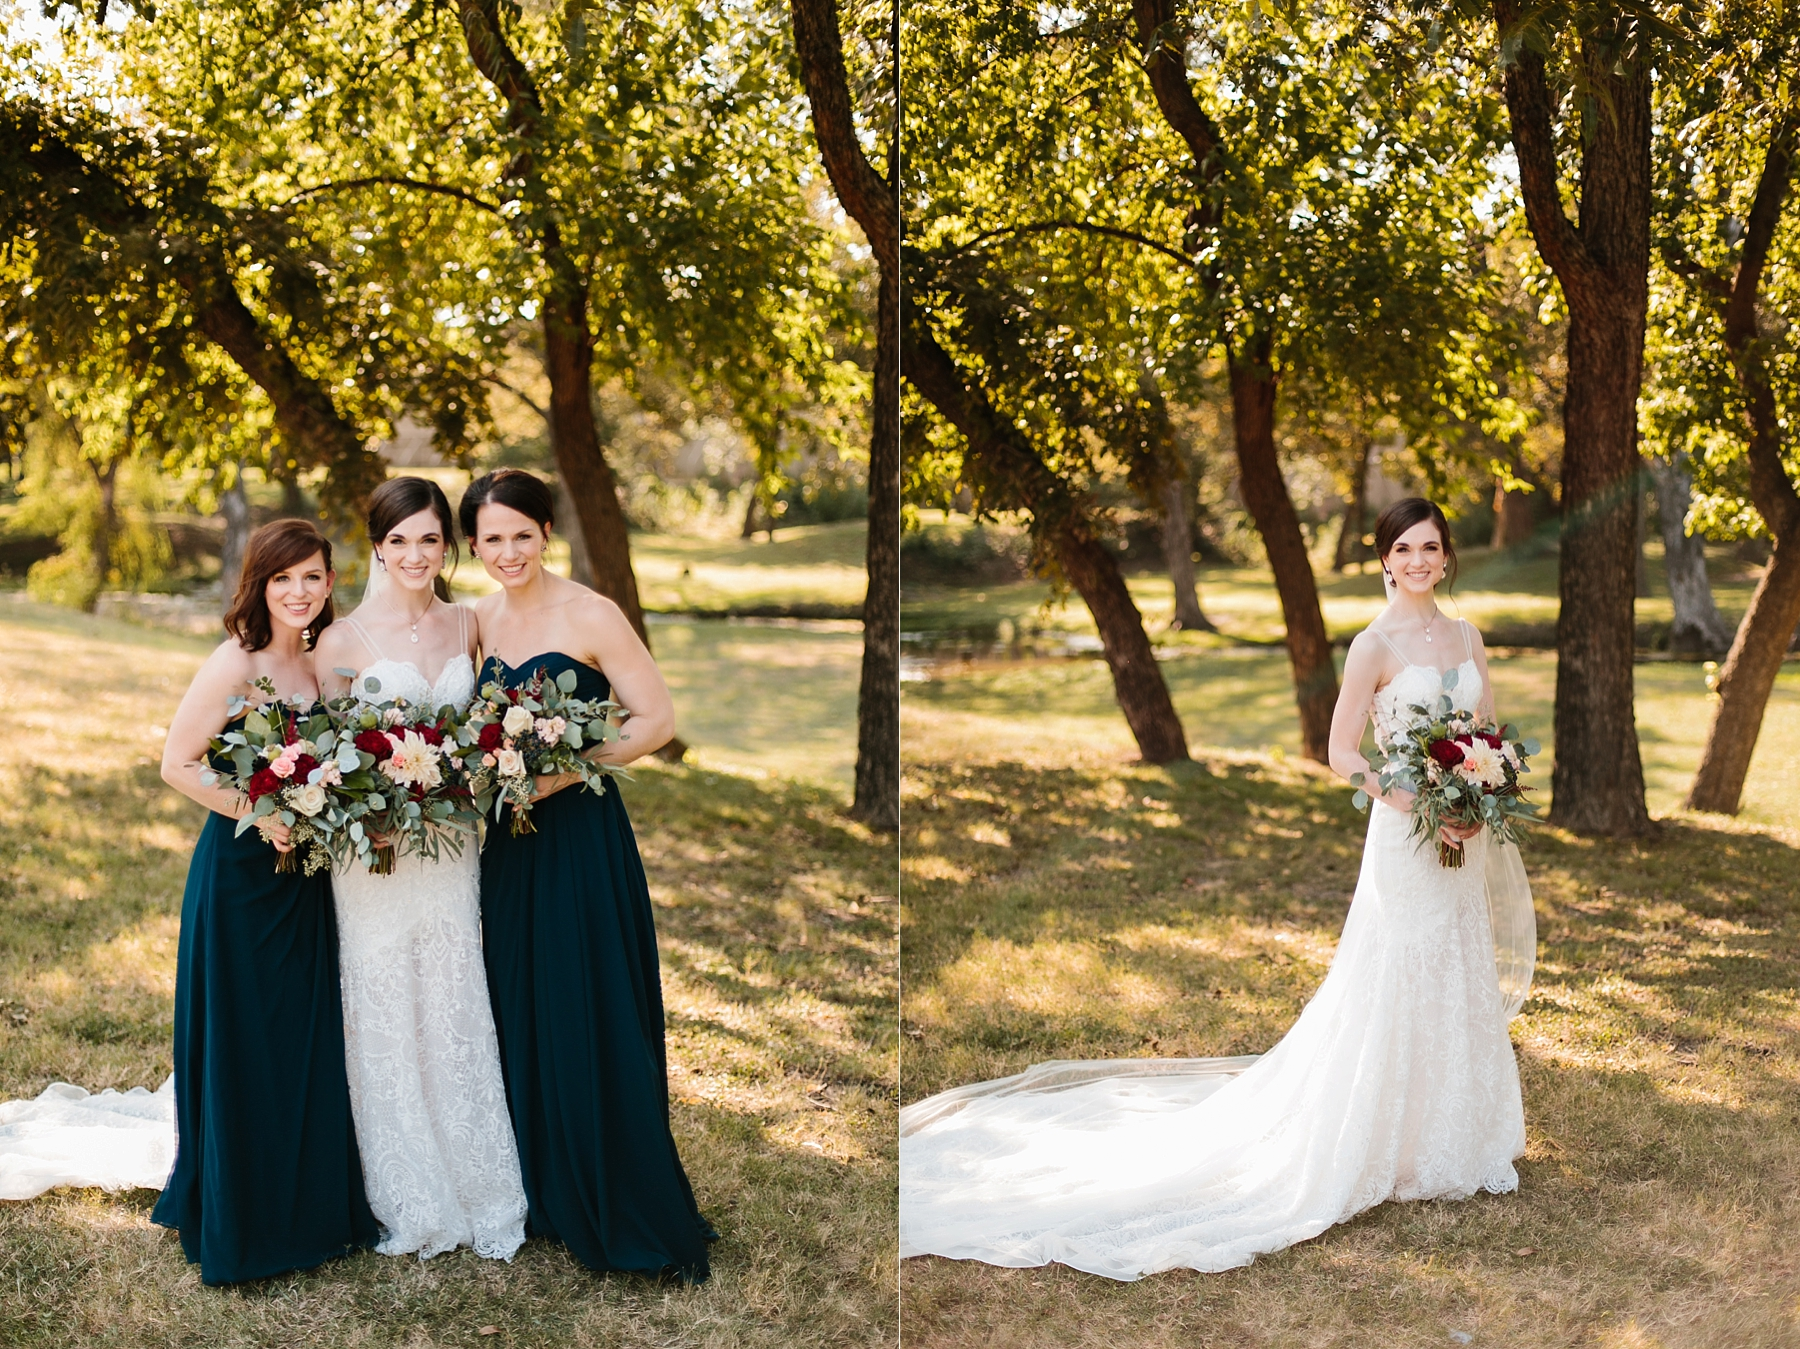 Emily + Caleb _ an elegant, intentional, industrial style wedding with navy + gold accents at 6500 in Dallas, TX by North Texas Wedding Photographer Rachel Meagan Photography _ 060